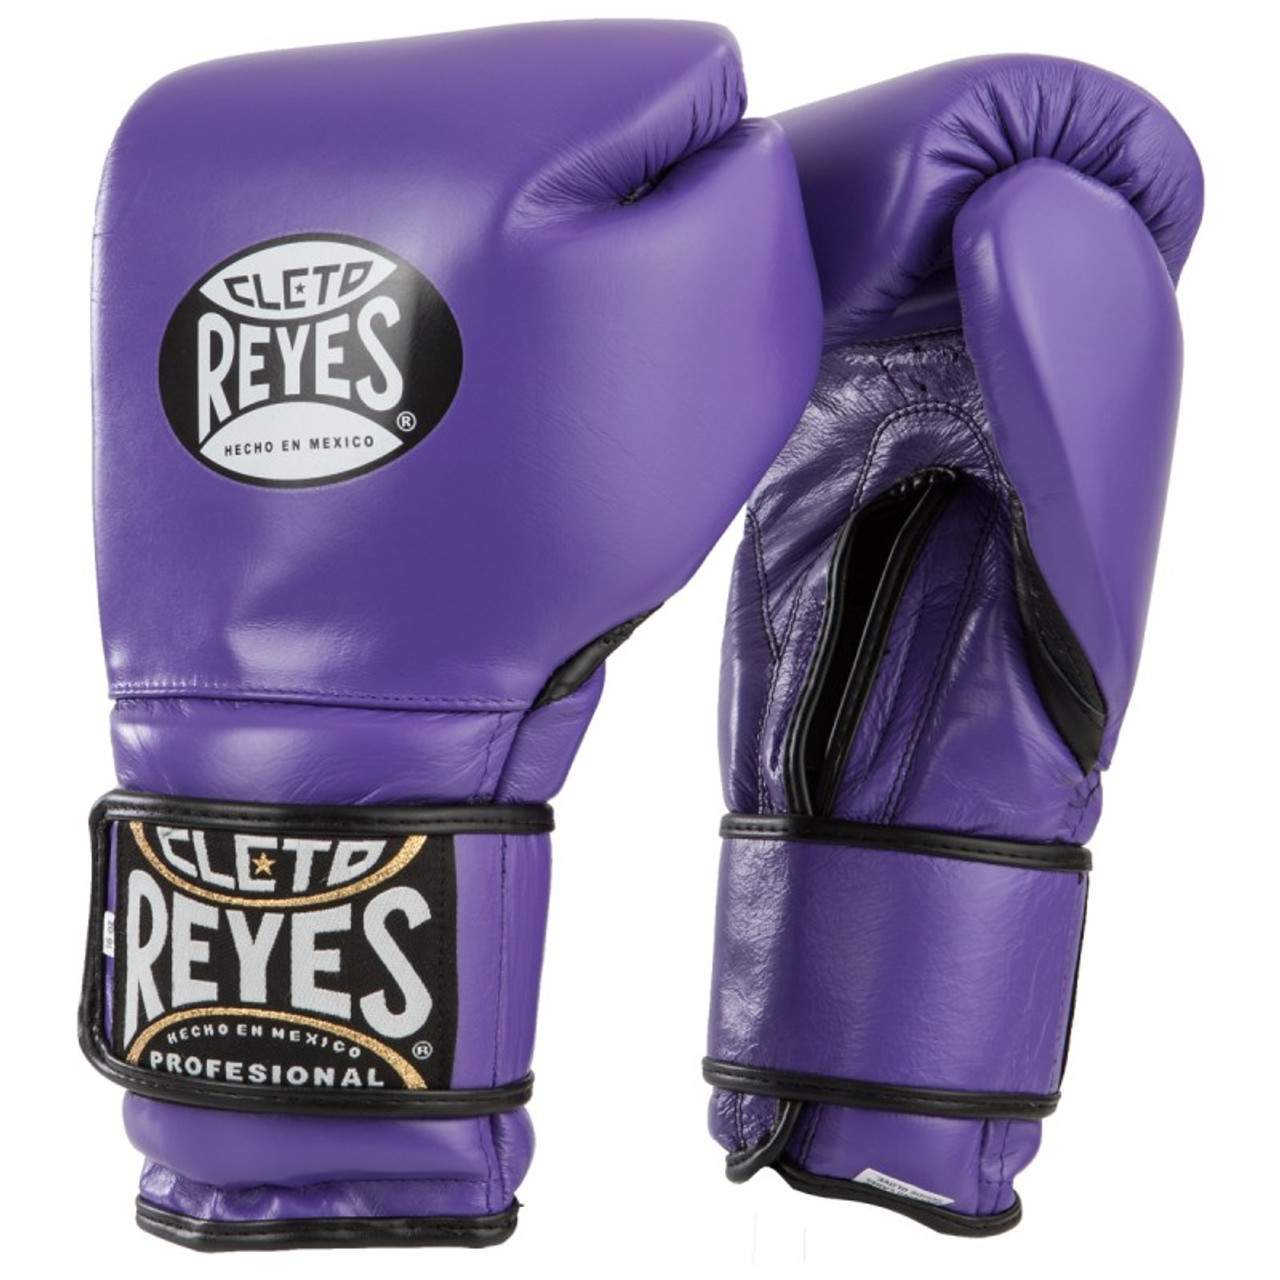 e3521f0c3d9 Cleto Reyes Hook and Loop Leather Training Boxing Gloves - Purple - PRO  BOXING SHOP®